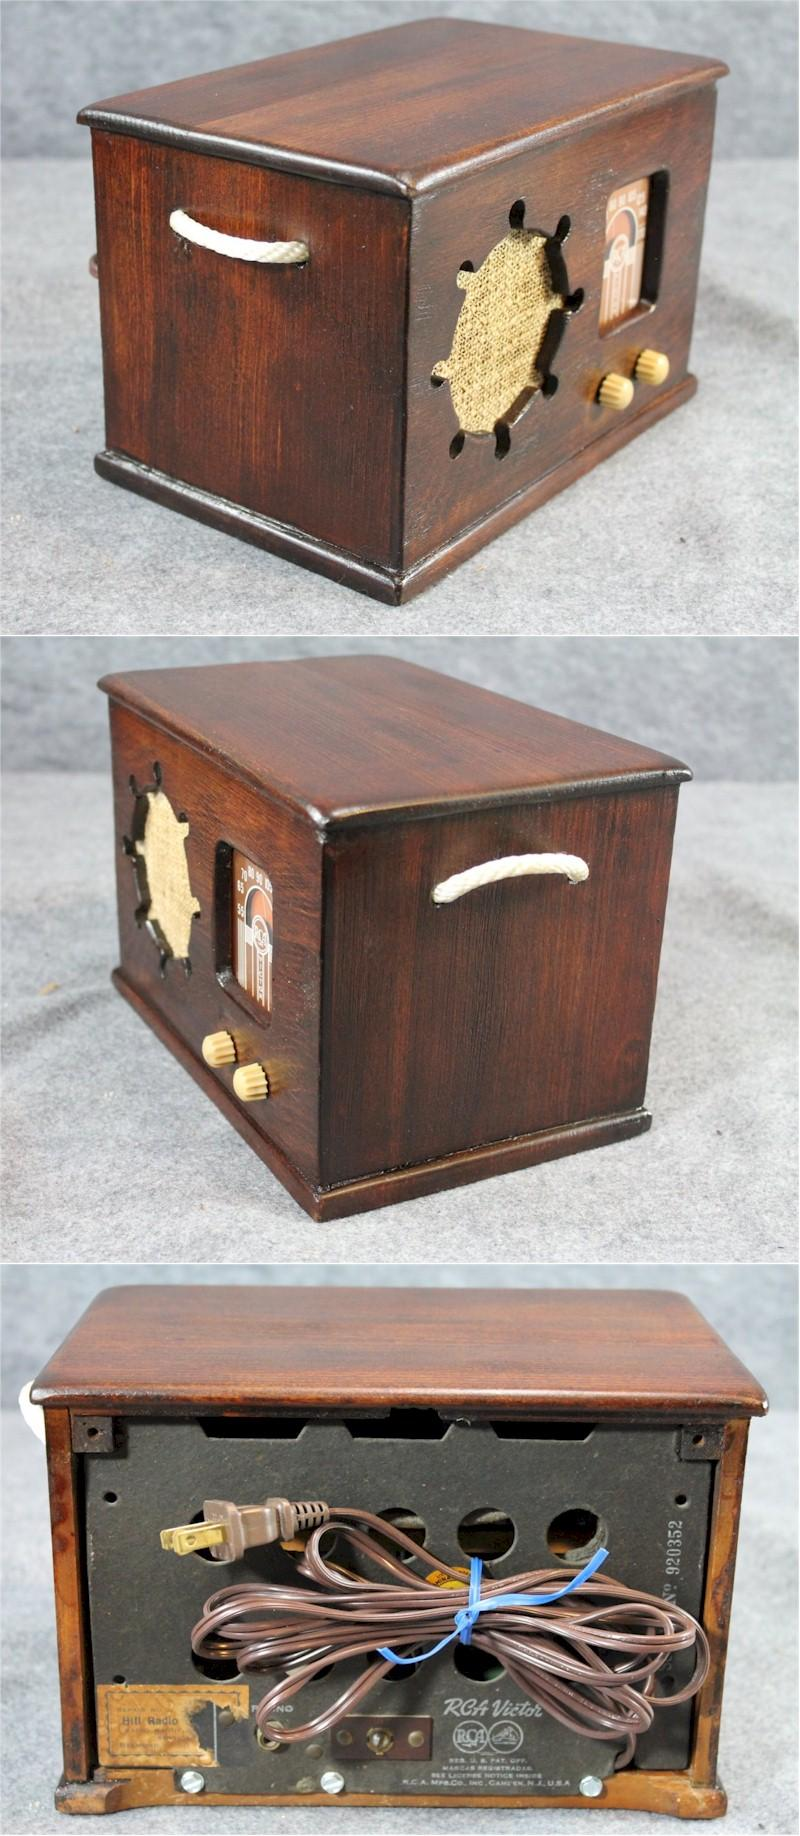 "RCA 40-X1 ""Treasure Chest"" (1939)"